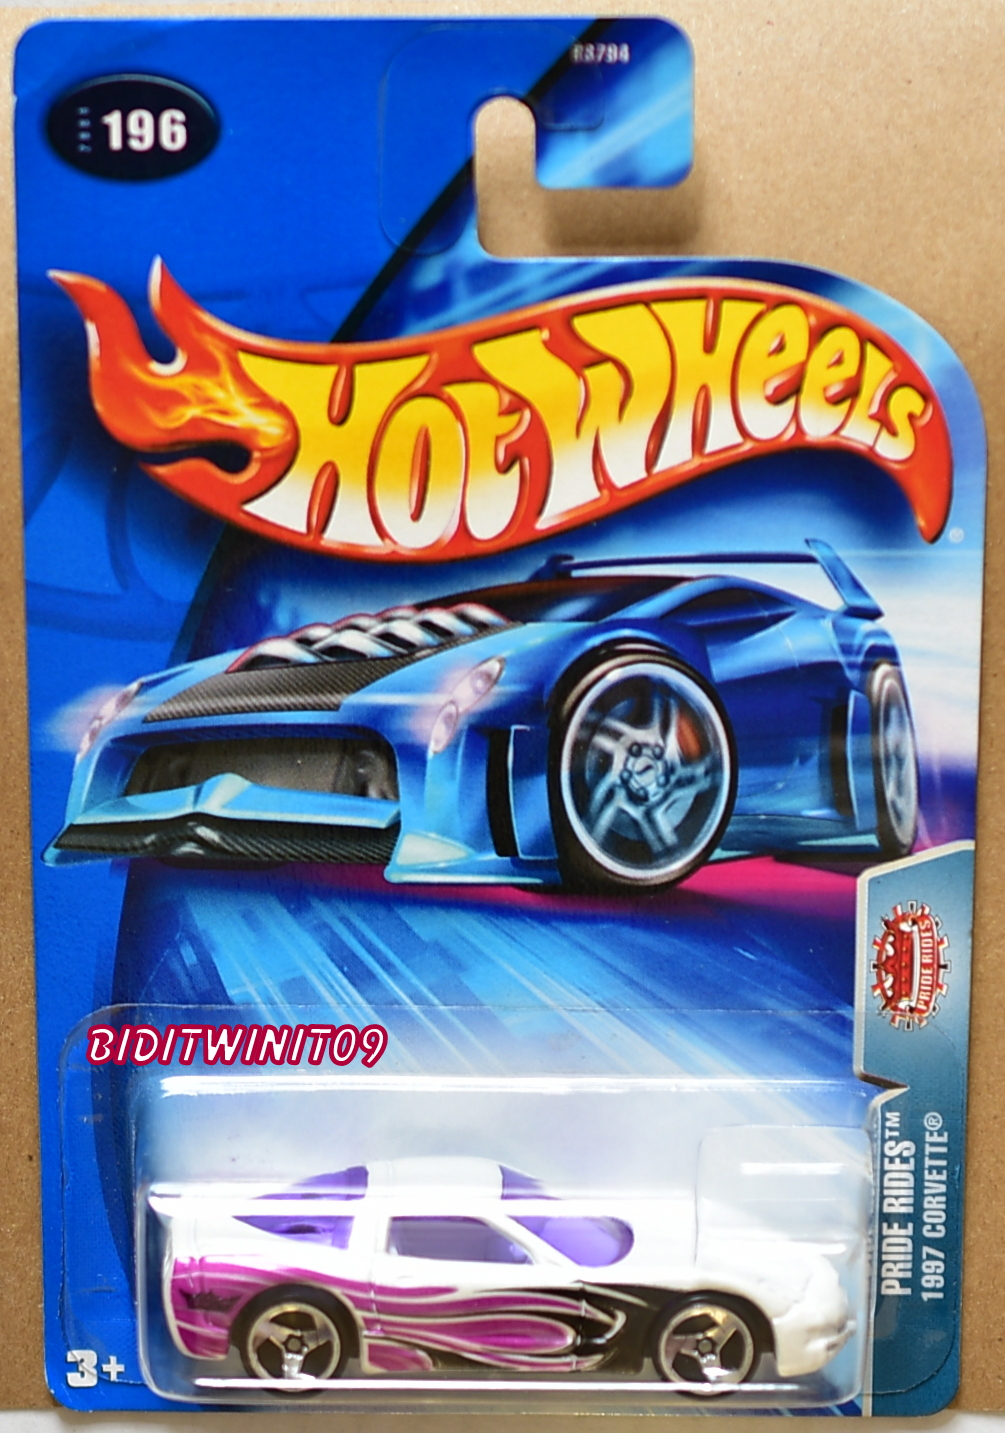 HOT WHEELS 2004 PRIDE RIDES 1997 CORVETTE #196 WHITE E+